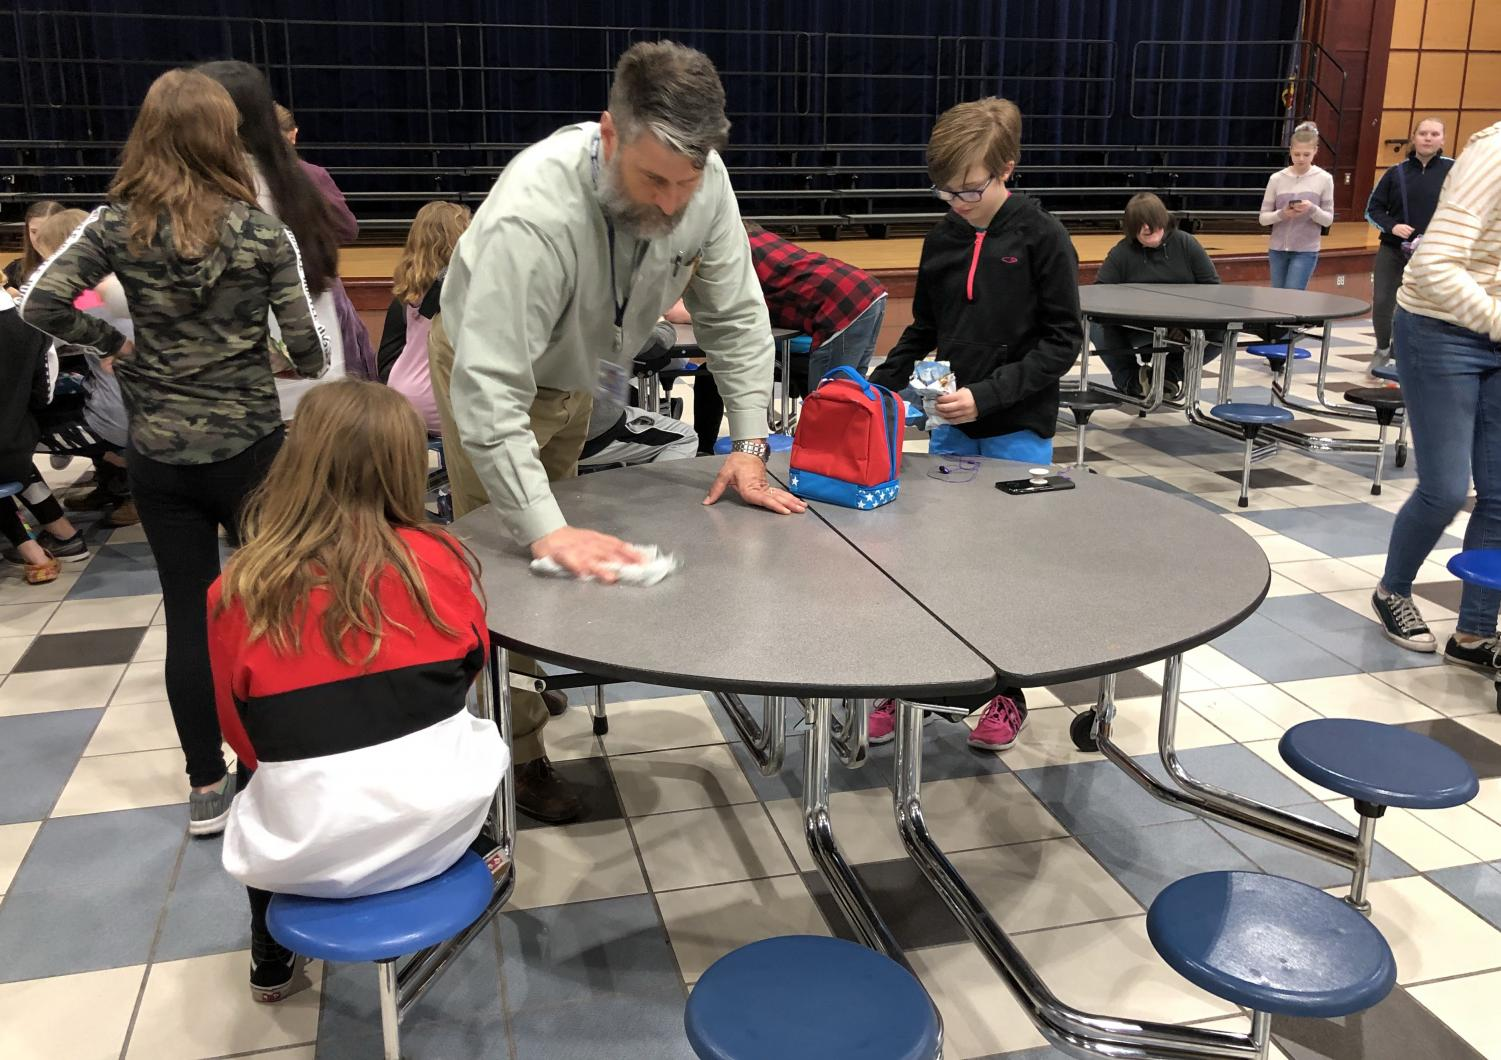 Rick Flaherty, current middle school principal, wipes down a lunch table in the middle school cafeteria on March 22. Flaherty will be moving up to SHS as its new principal for the 2019-2020 school year.